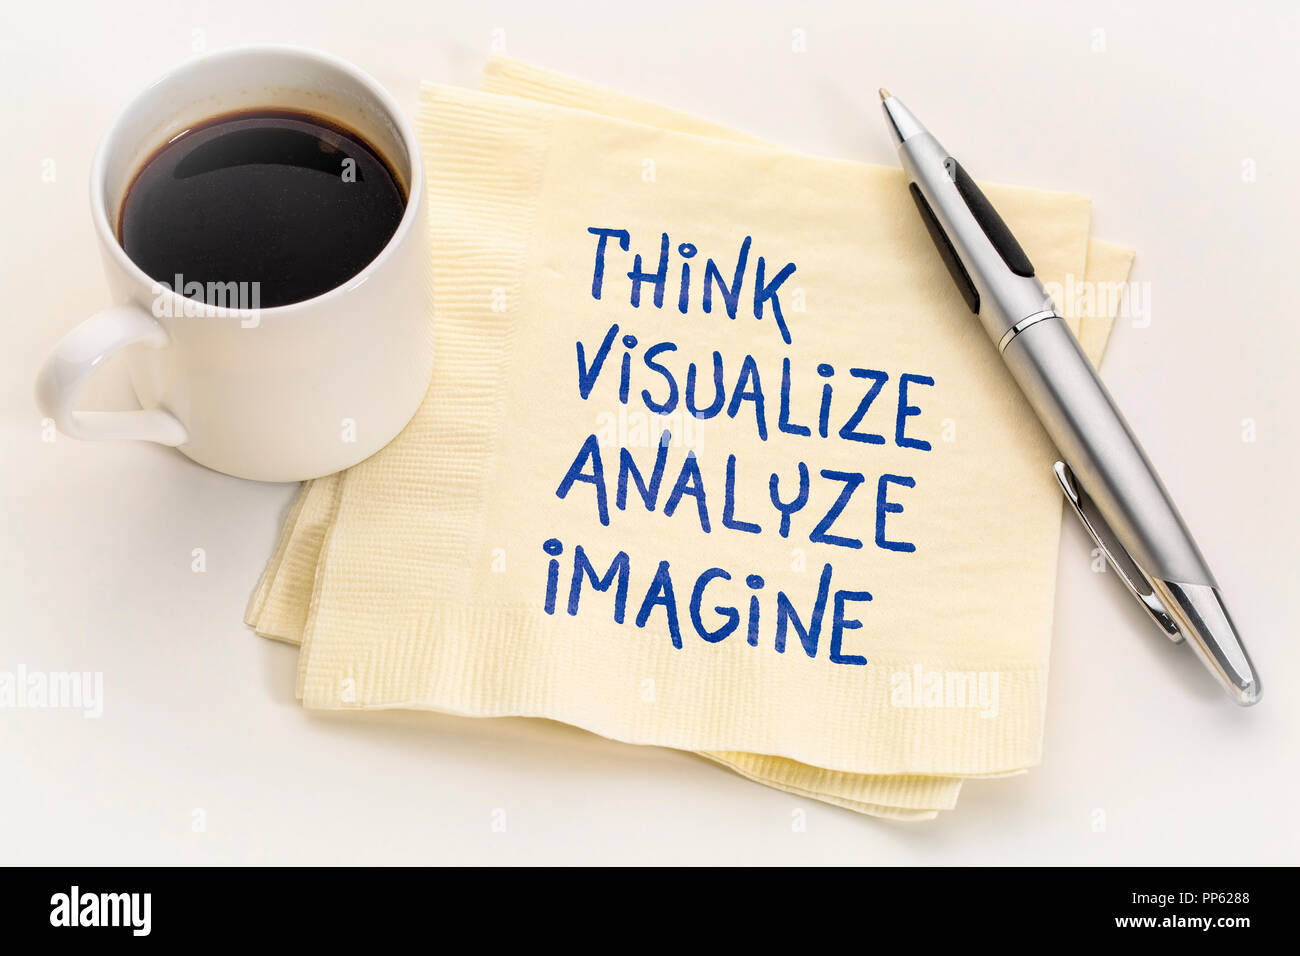 think, visualize, analyze and imagine - inspirational handwriting on a napkin with a cup of coffee - Stock Image